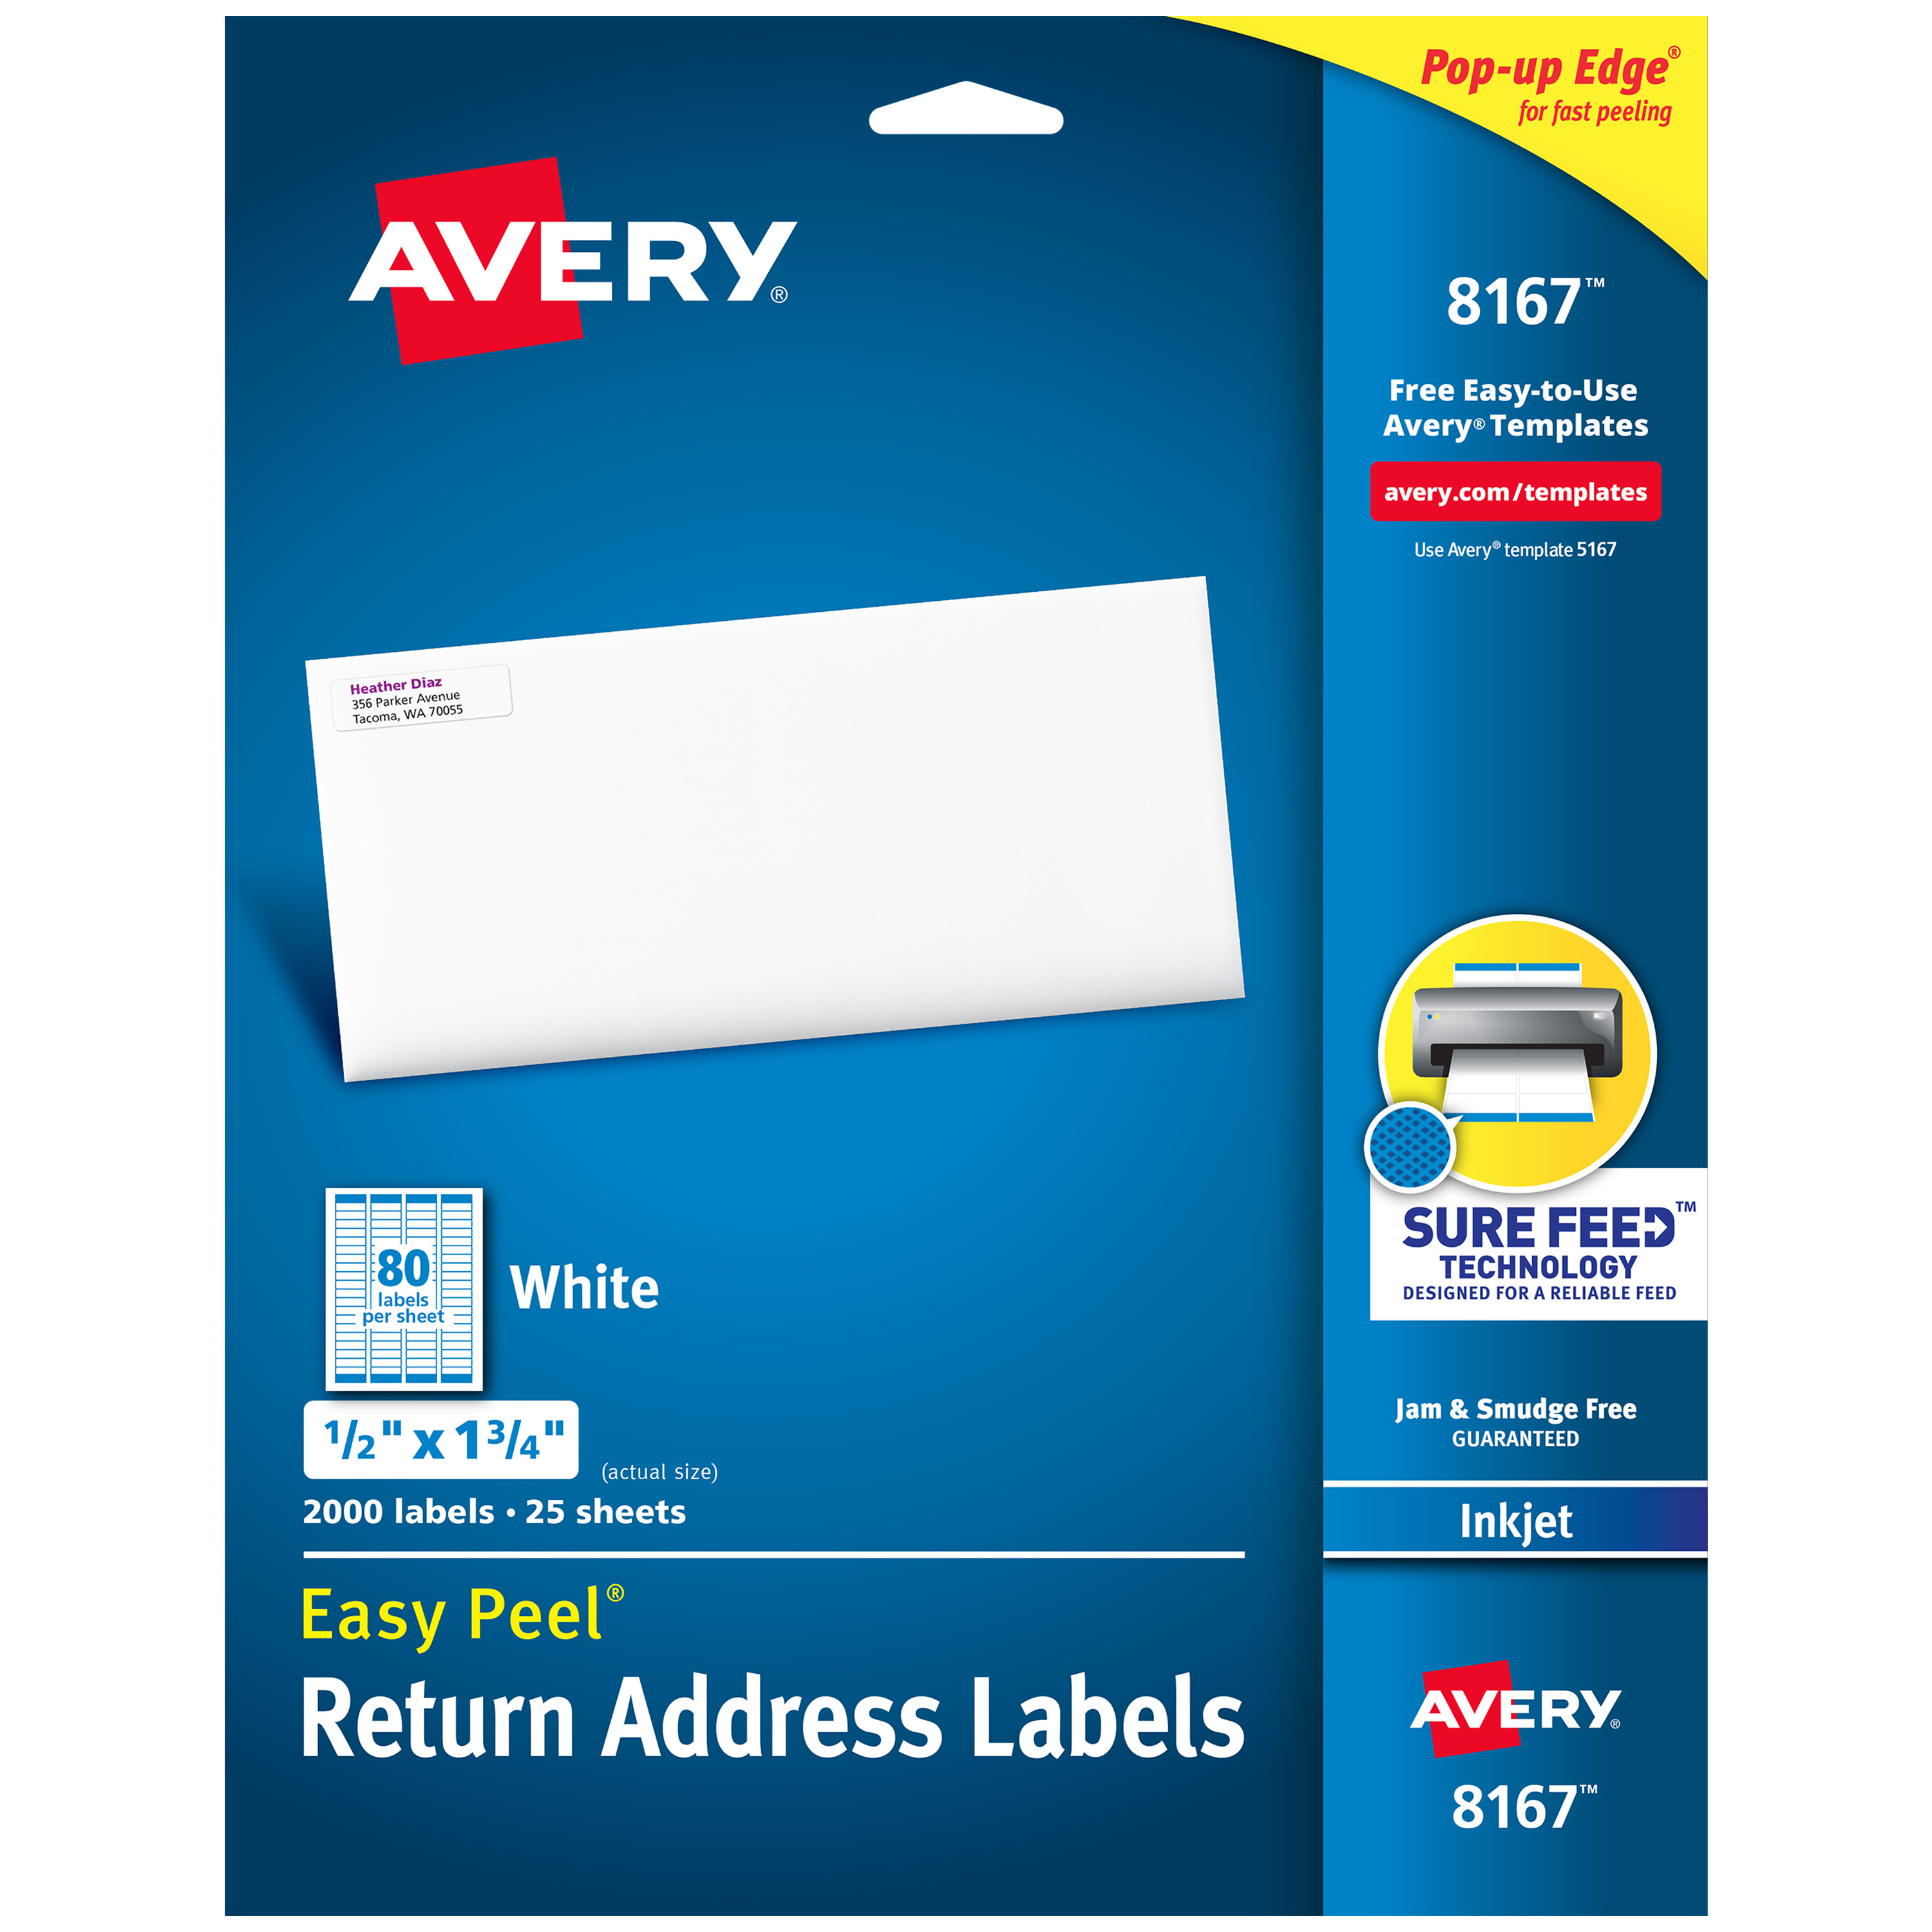 Avery Easy Peel Return Address Labels Sure Feedtechnology